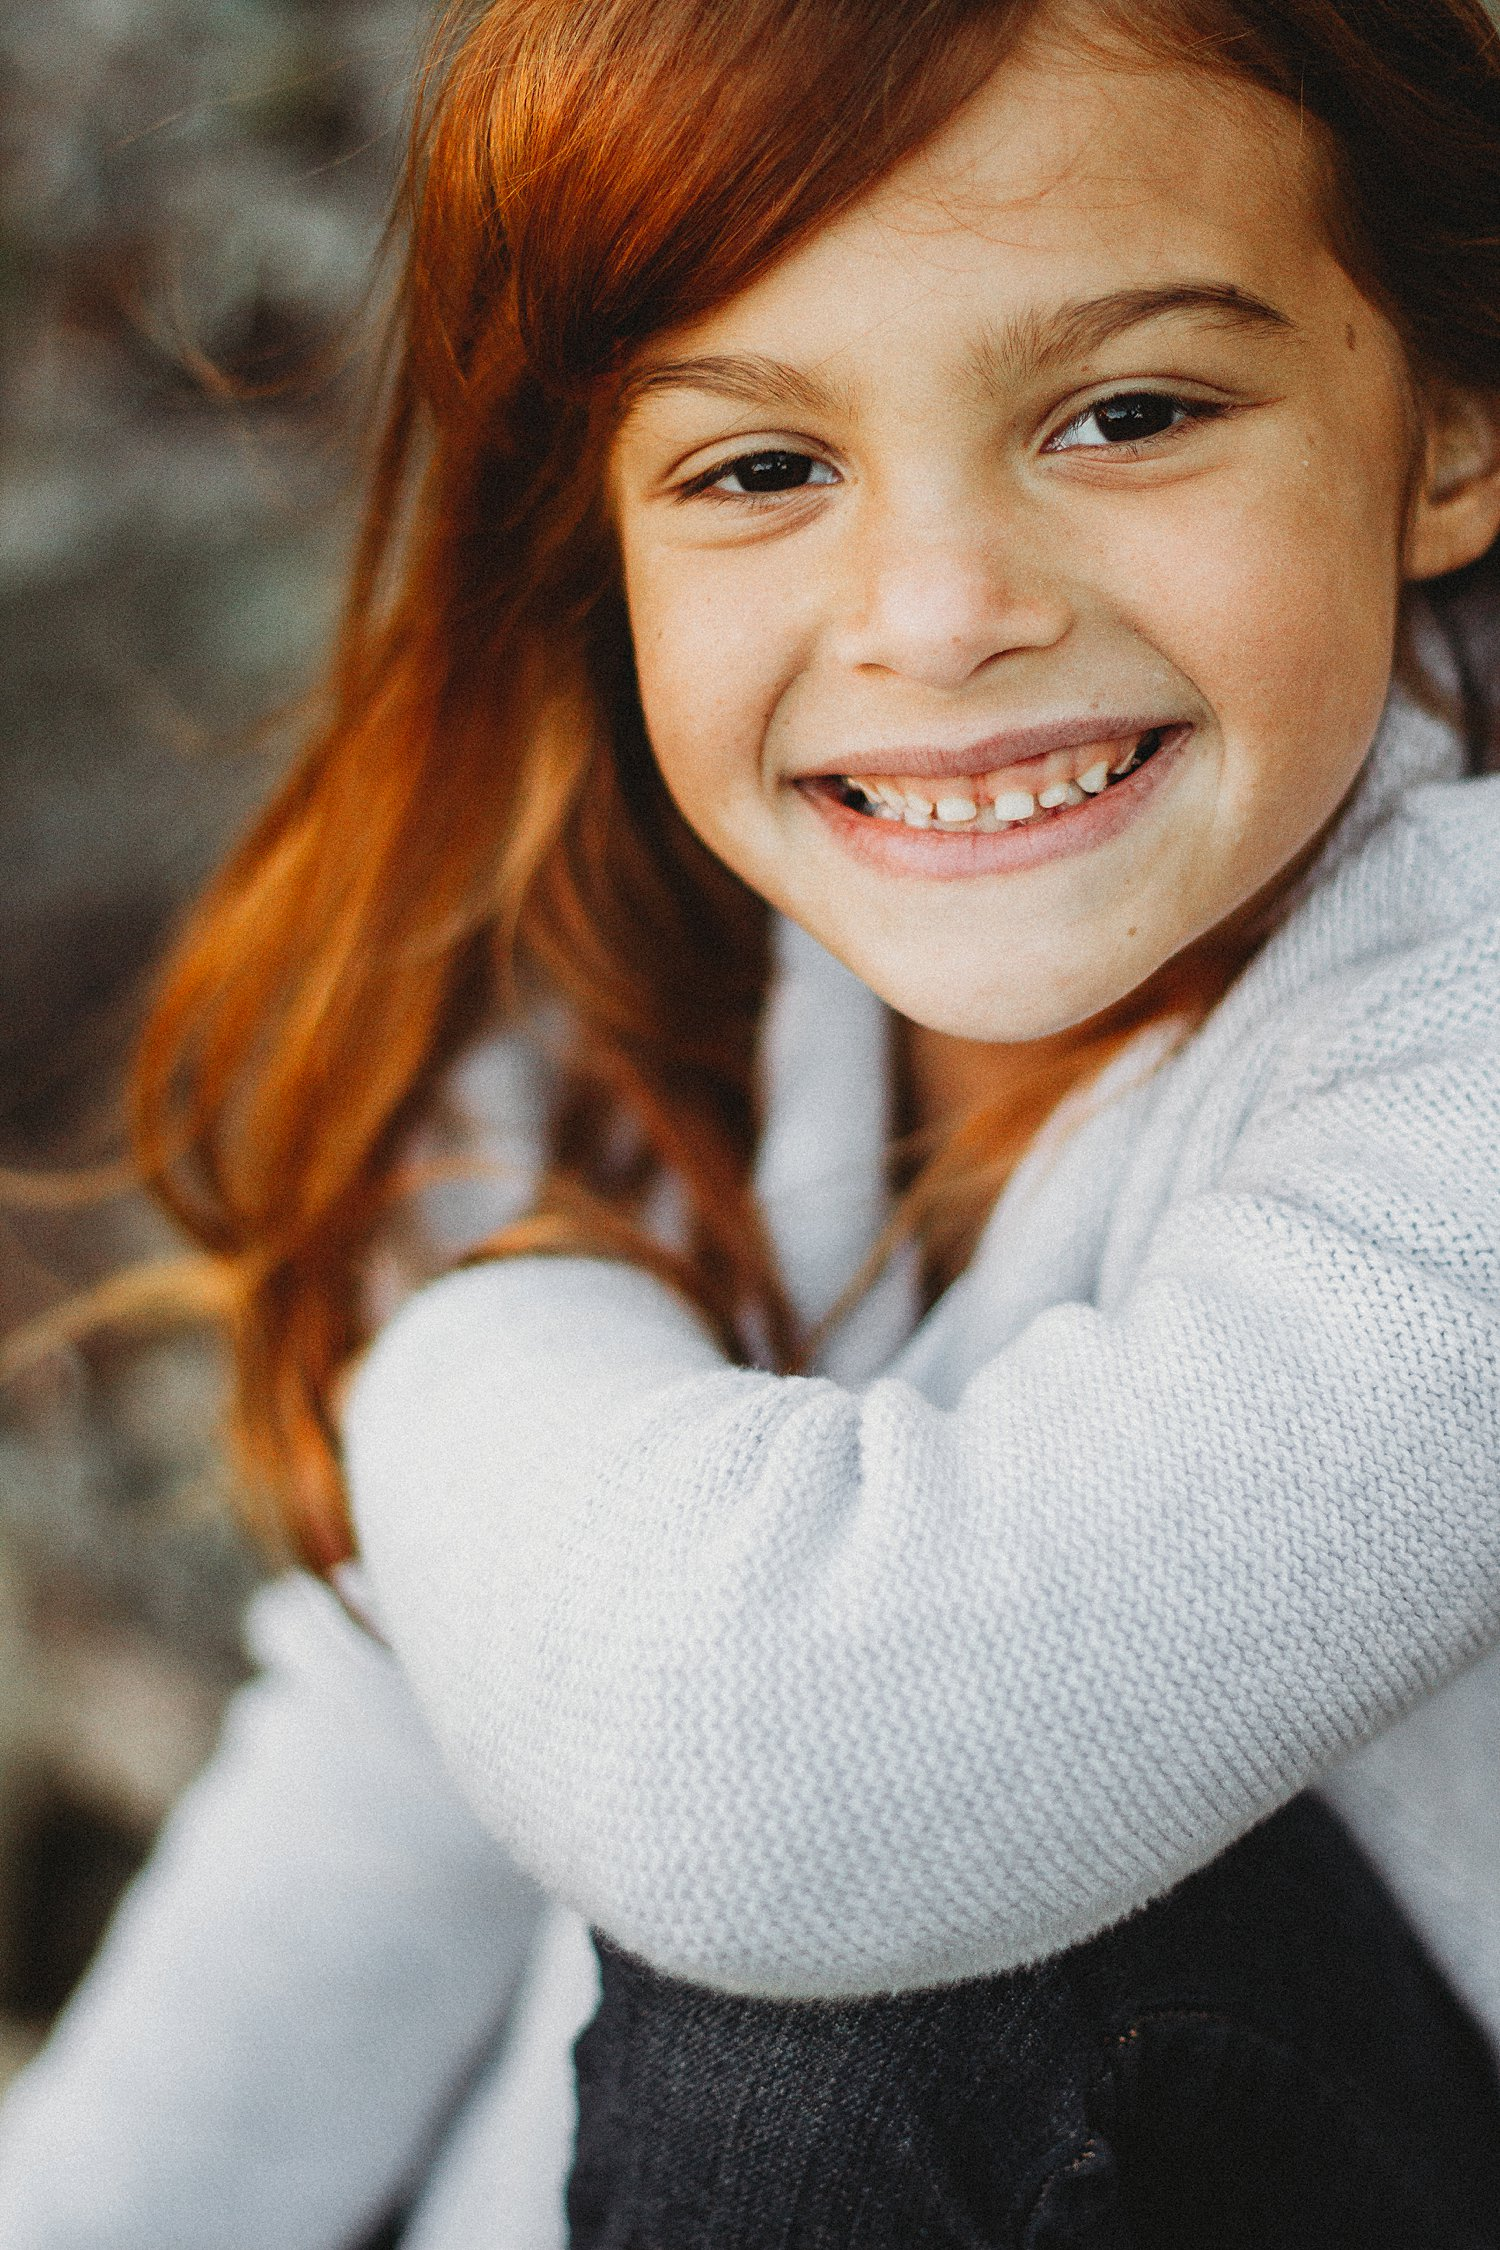 Portrait of young girl smiling with red hair